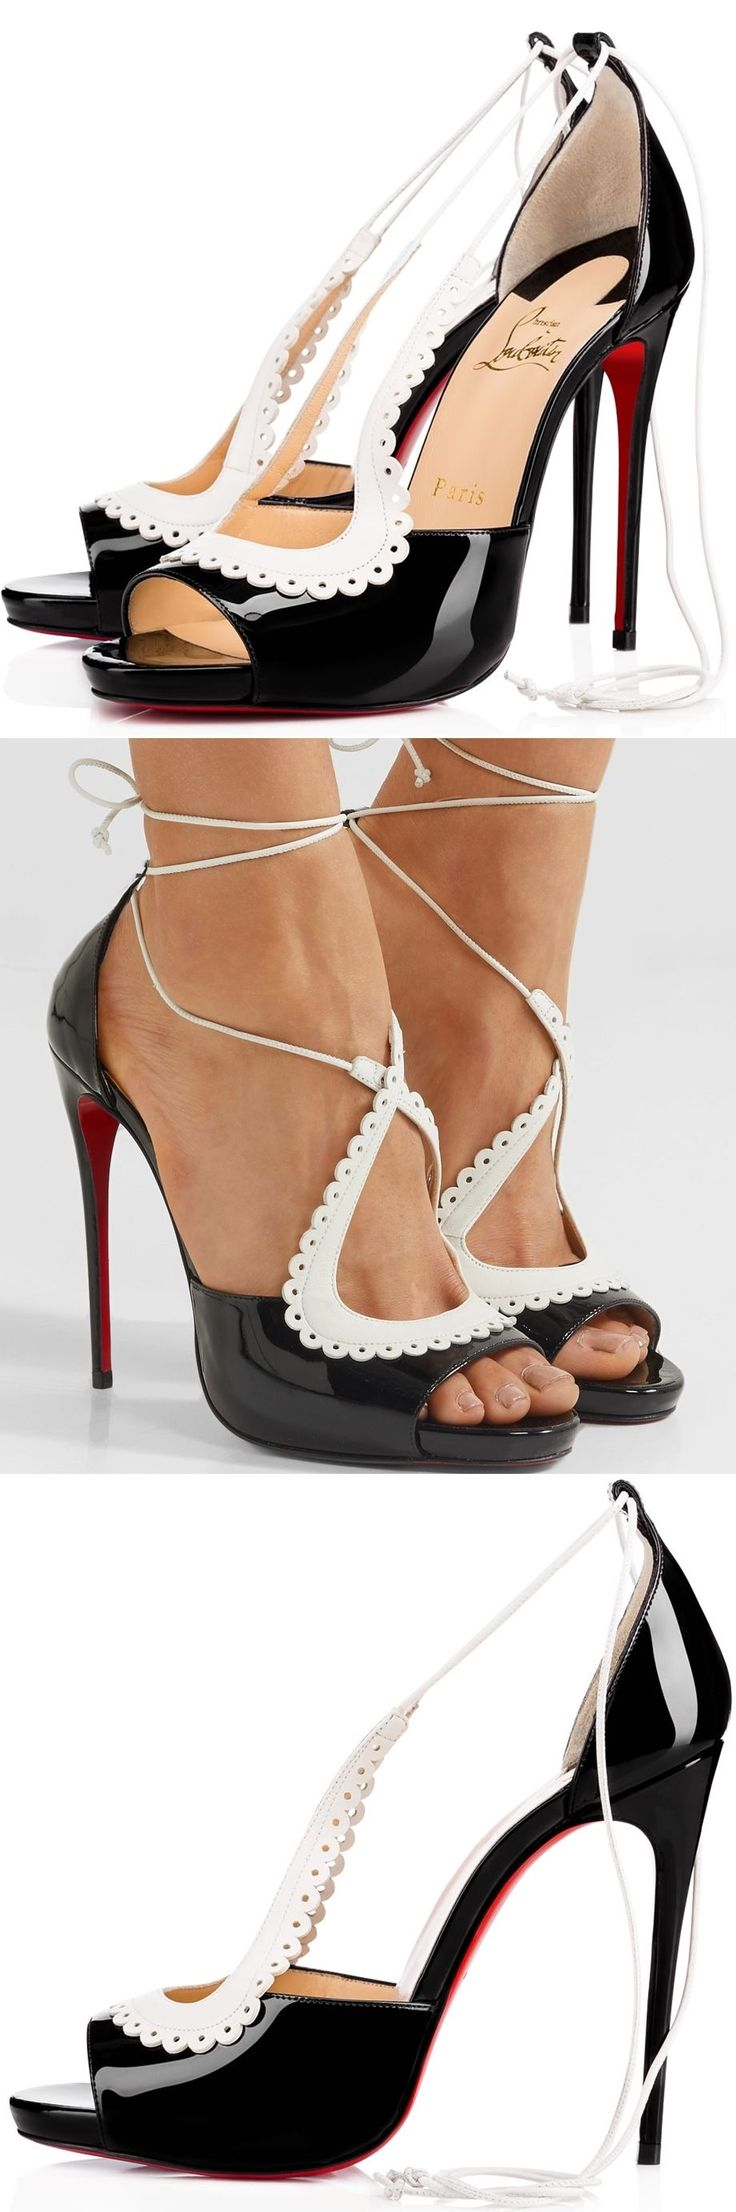 "Christian Louboutin's 'Operissima' sandals are modeled on the brand's classic silhouette but ""dressed up with a coquettish flair."" Made in Italy from black patent-leather, they're finished with pretty white scalloped cutouts that elegantly frame your foot and ties at the ankle. The slim stiletto heel is perfectly angled and shaped to reveal the iconic red sole as you walk."